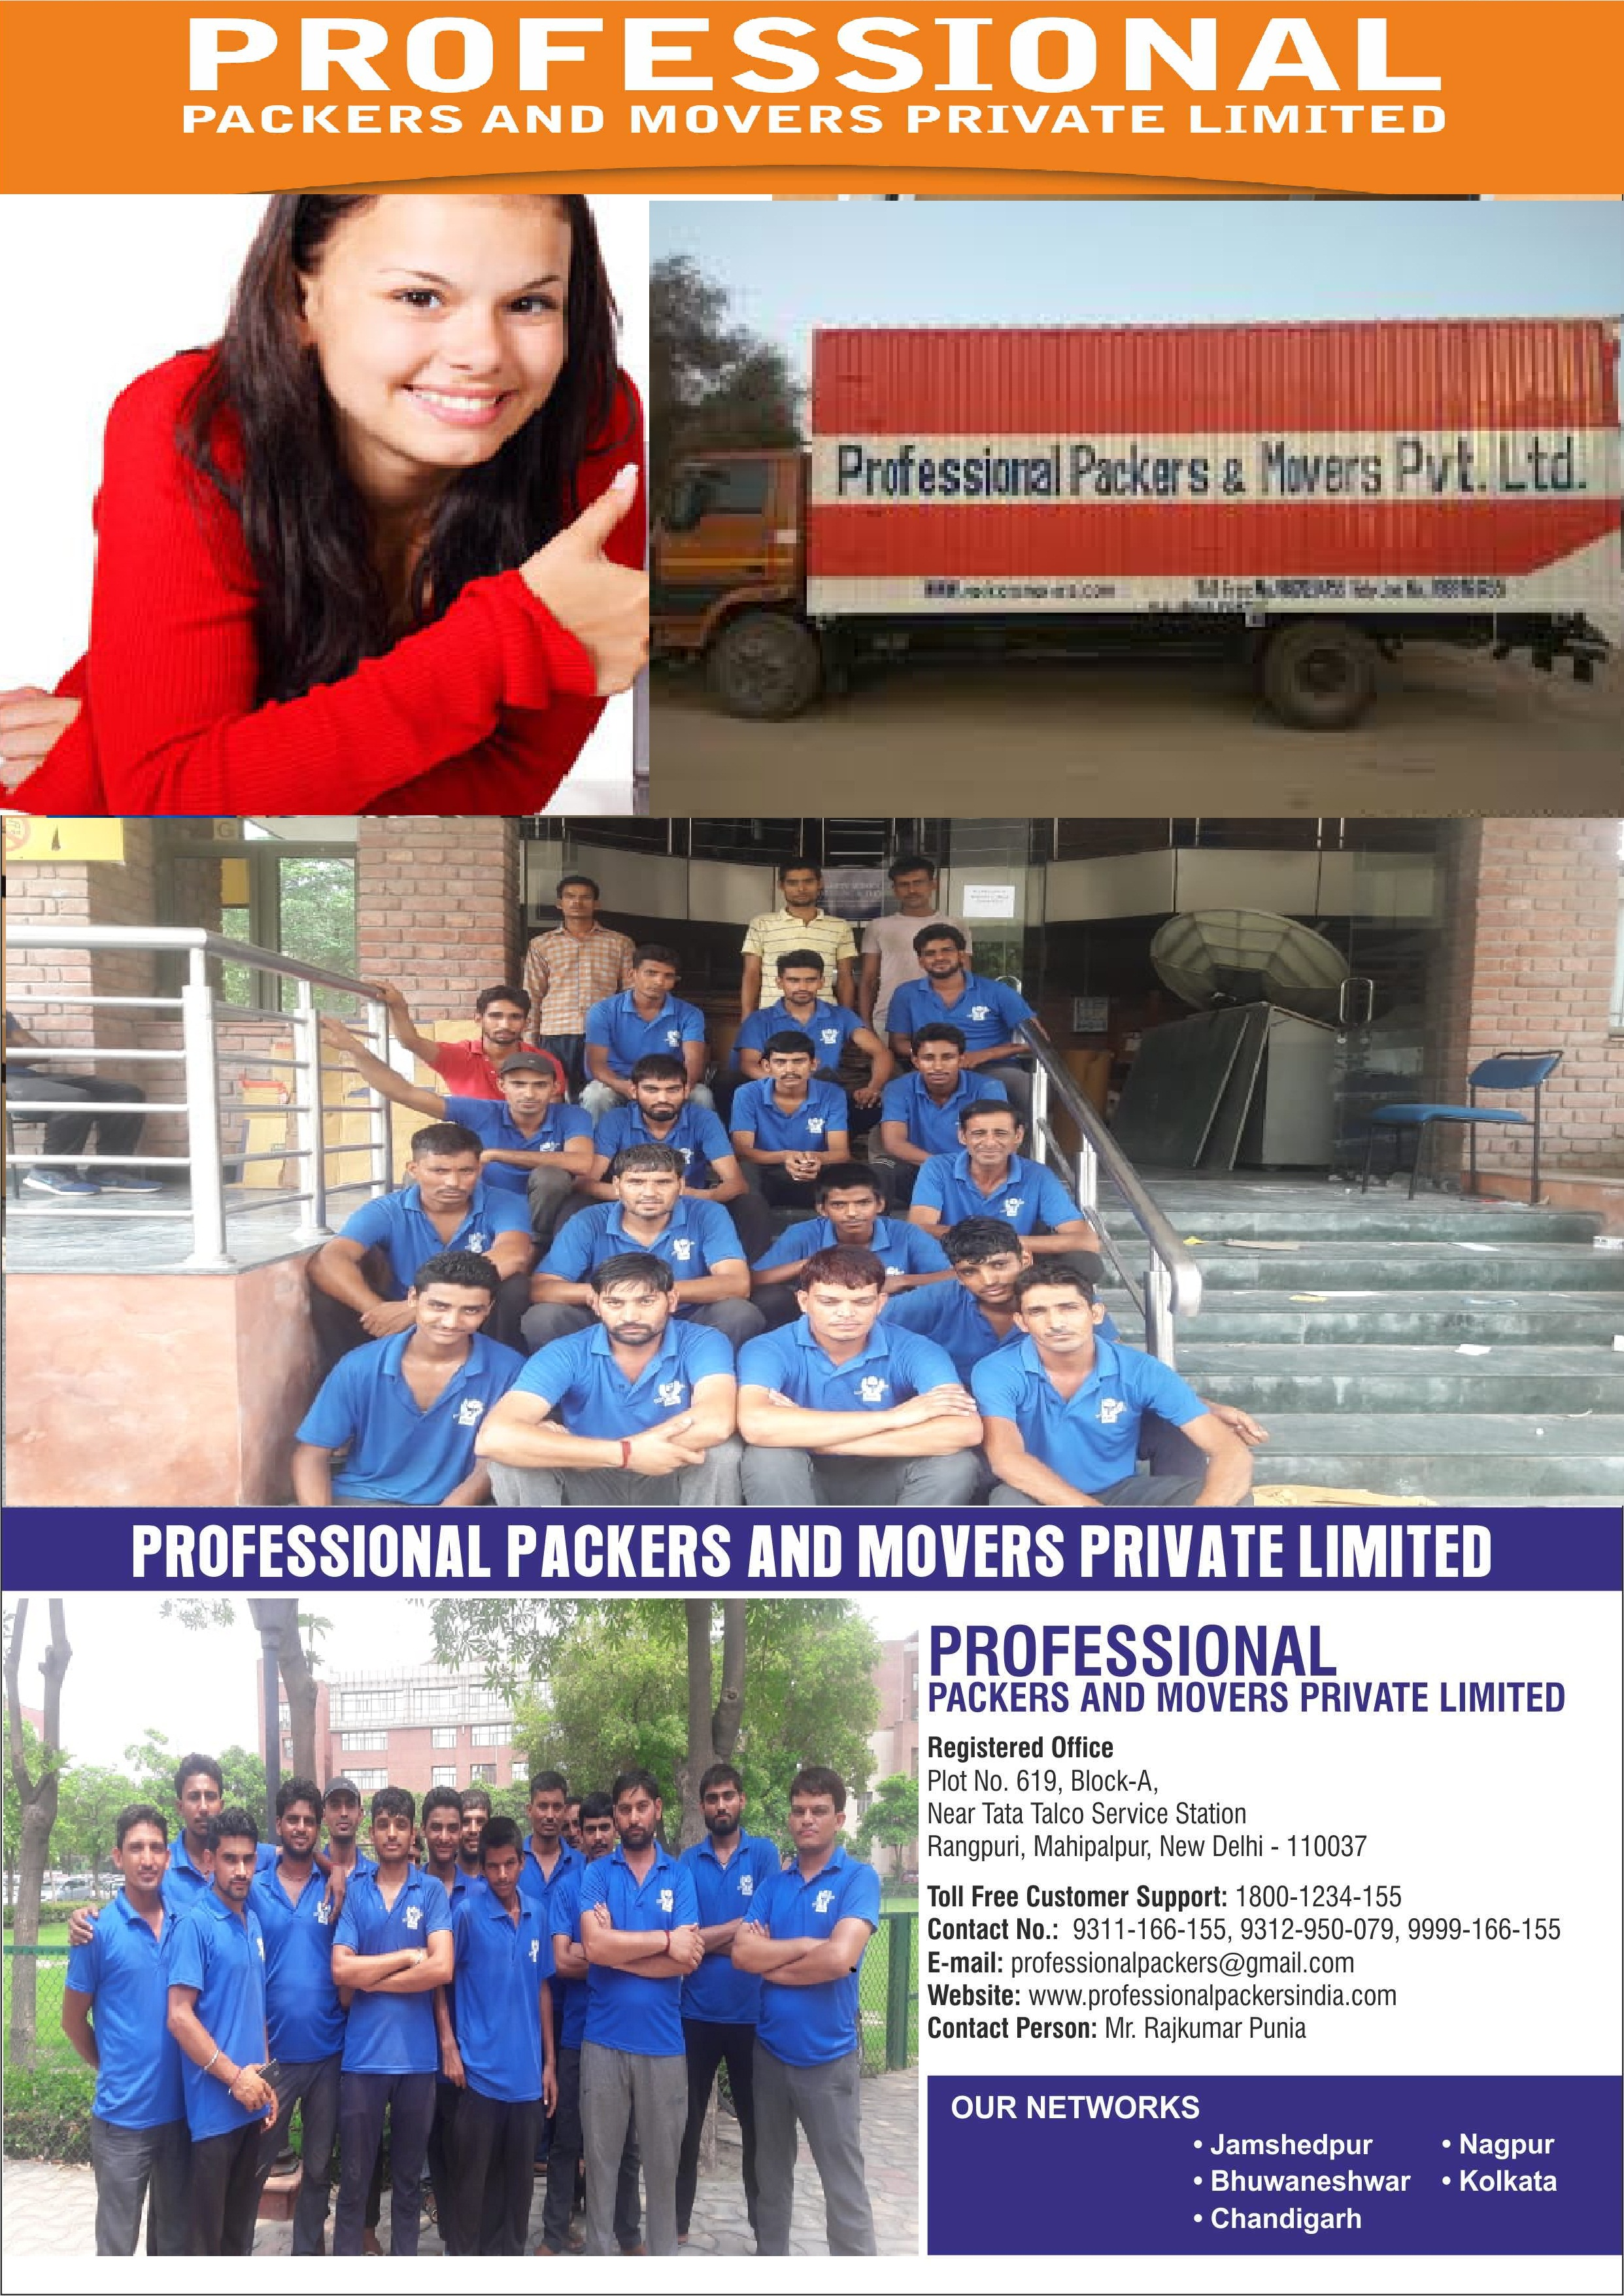 Professional - Packers And Movers Kolkata,Movers And Packers-Services-Moving & Storage Services-Kolkata